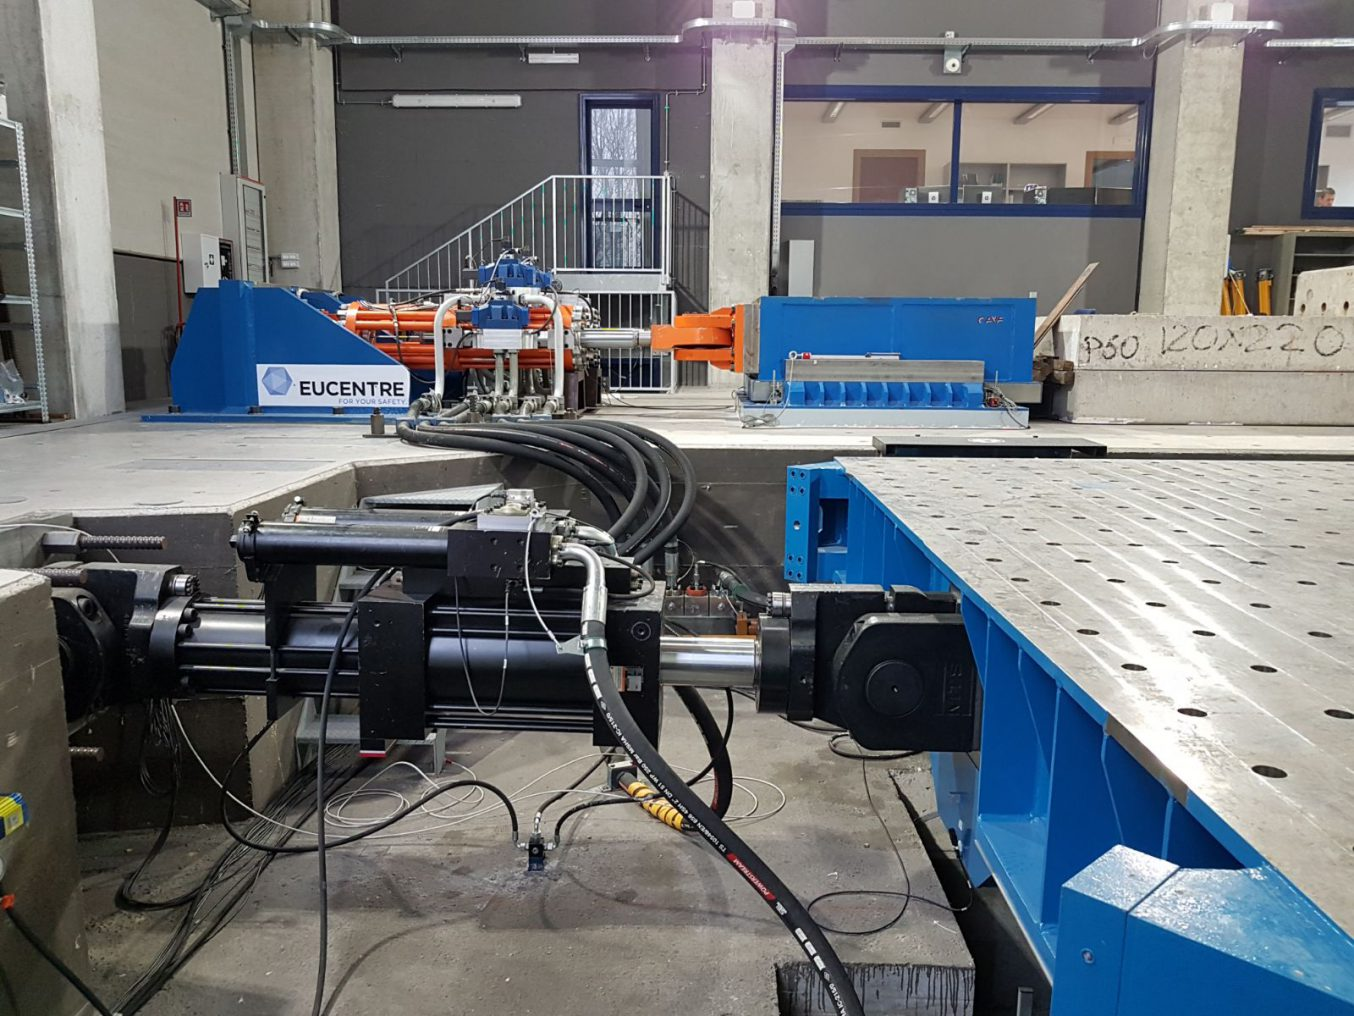 Department of Industrial Products - Fondazione Eucentre - European Centre For Training And Research in Earthquake Engineering - Italy - Dipartimento Prodotti Industriali